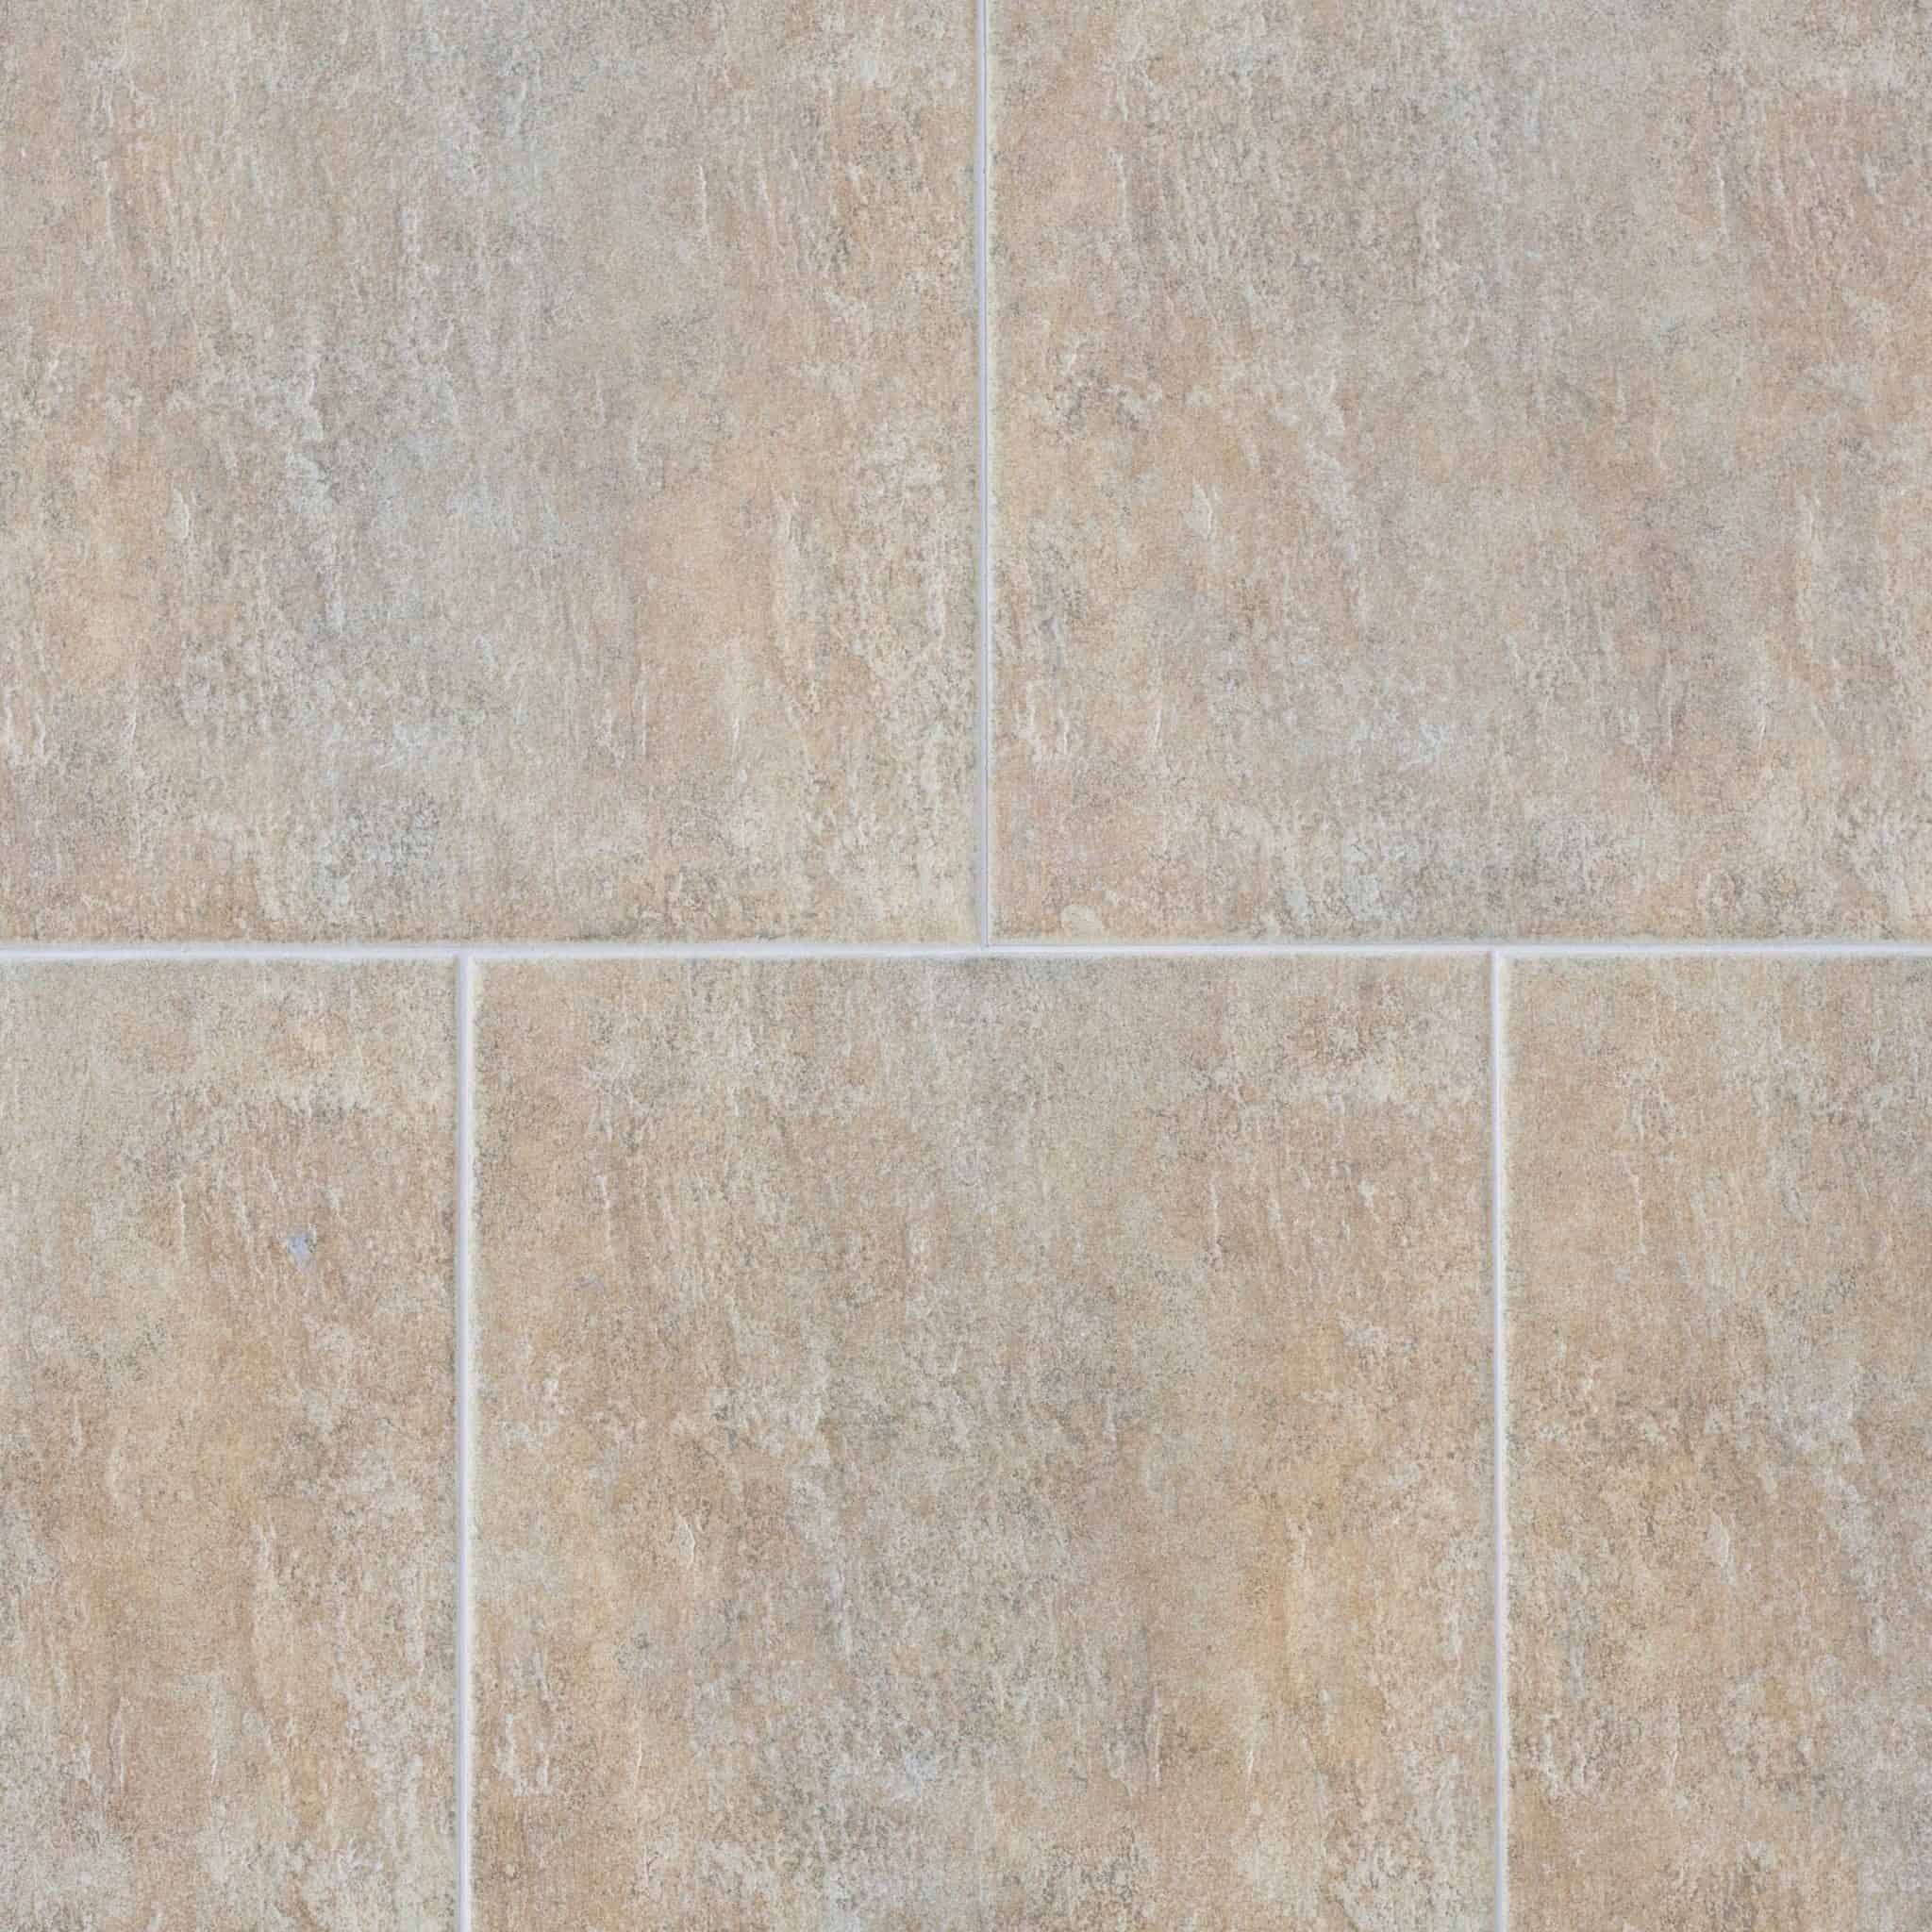 Keeping travertine tile clean dr clean home care dailygadgetfo Images